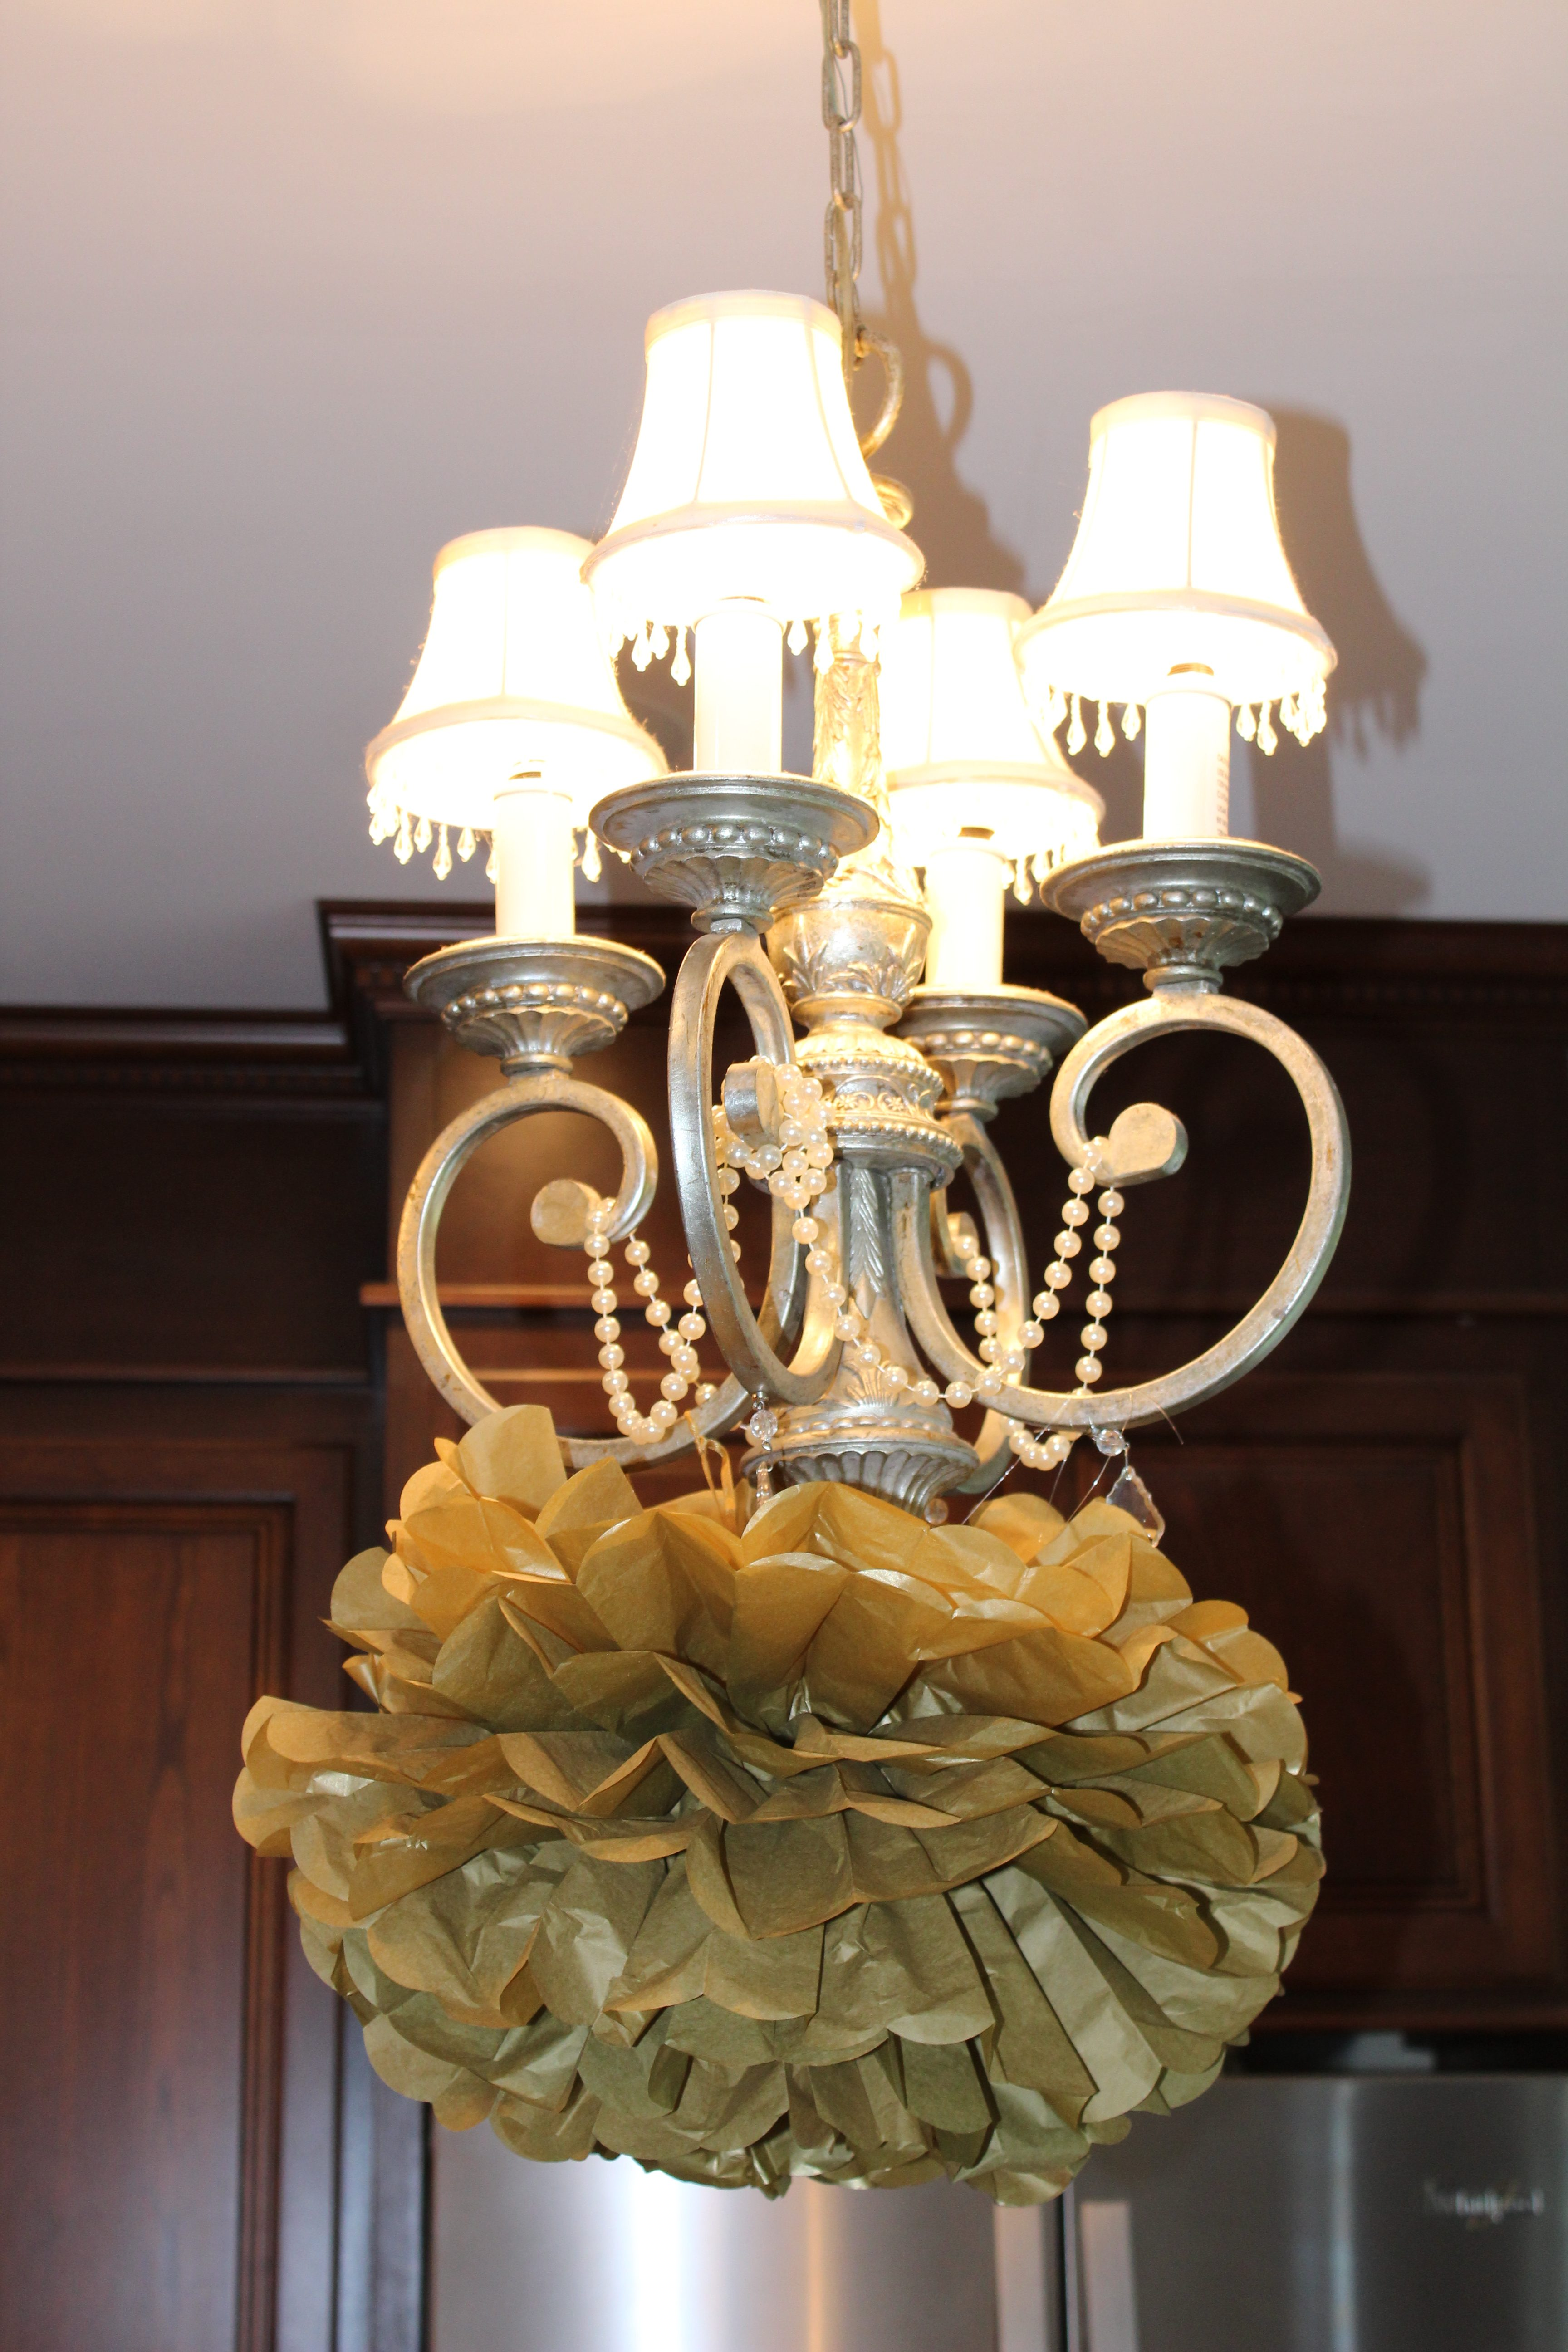 Petite chandelier rescue dells daily dish today i want to share with you some adorable little chandeliers i found for my brother and sister in laws house you wont believe the transformation aloadofball Gallery